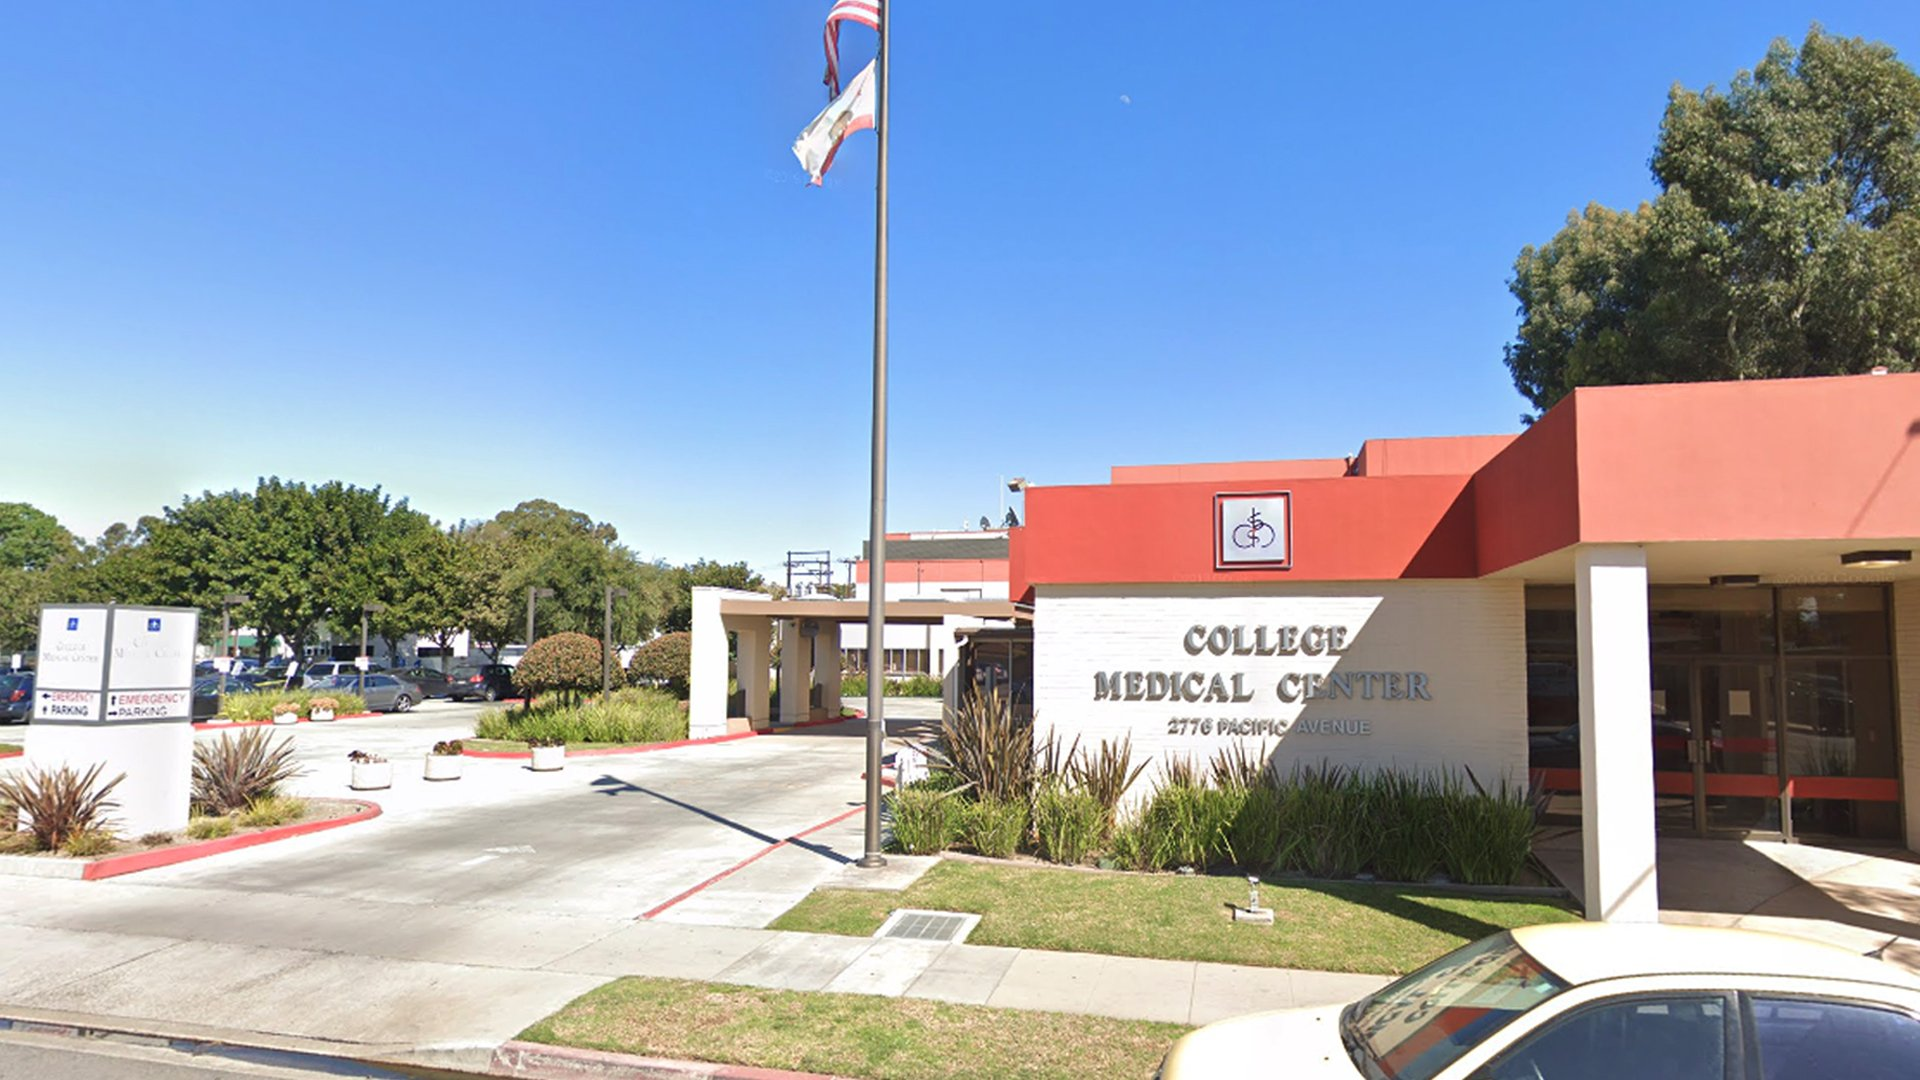 College Medical Center in Long Beach is seen in a Google Maps Street View image.